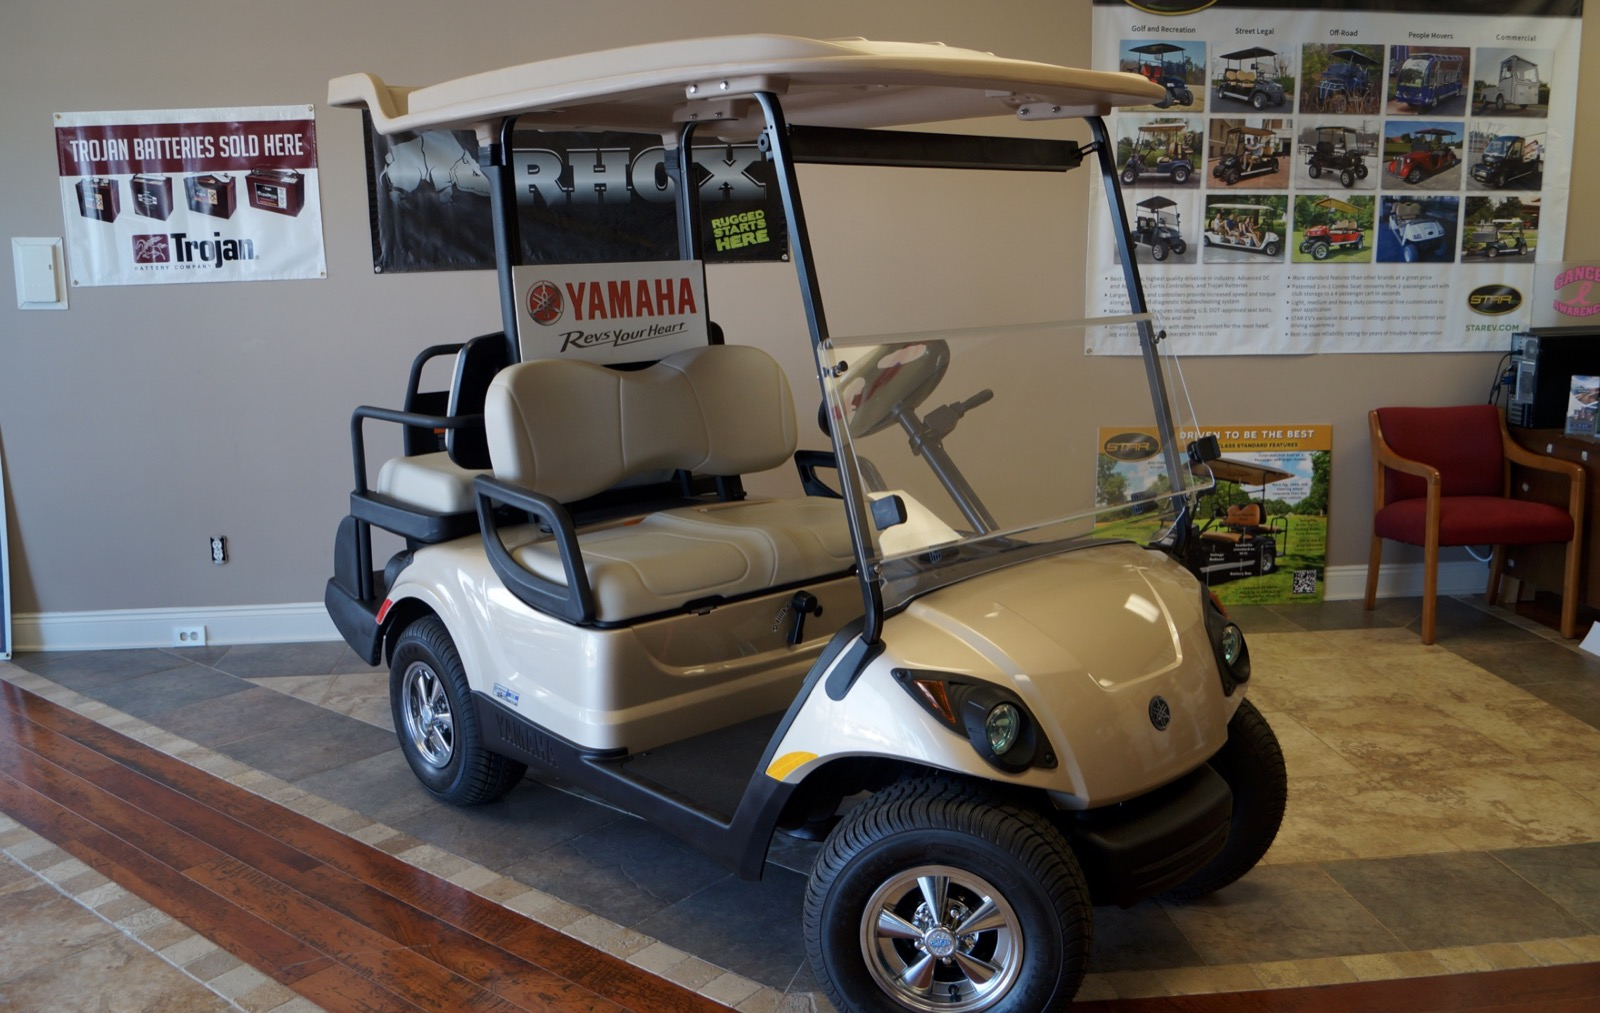 Buy Yamaha Golf Cars Golf Carts Mobile Al Golf Carts For Sale Golf Cart Rentals